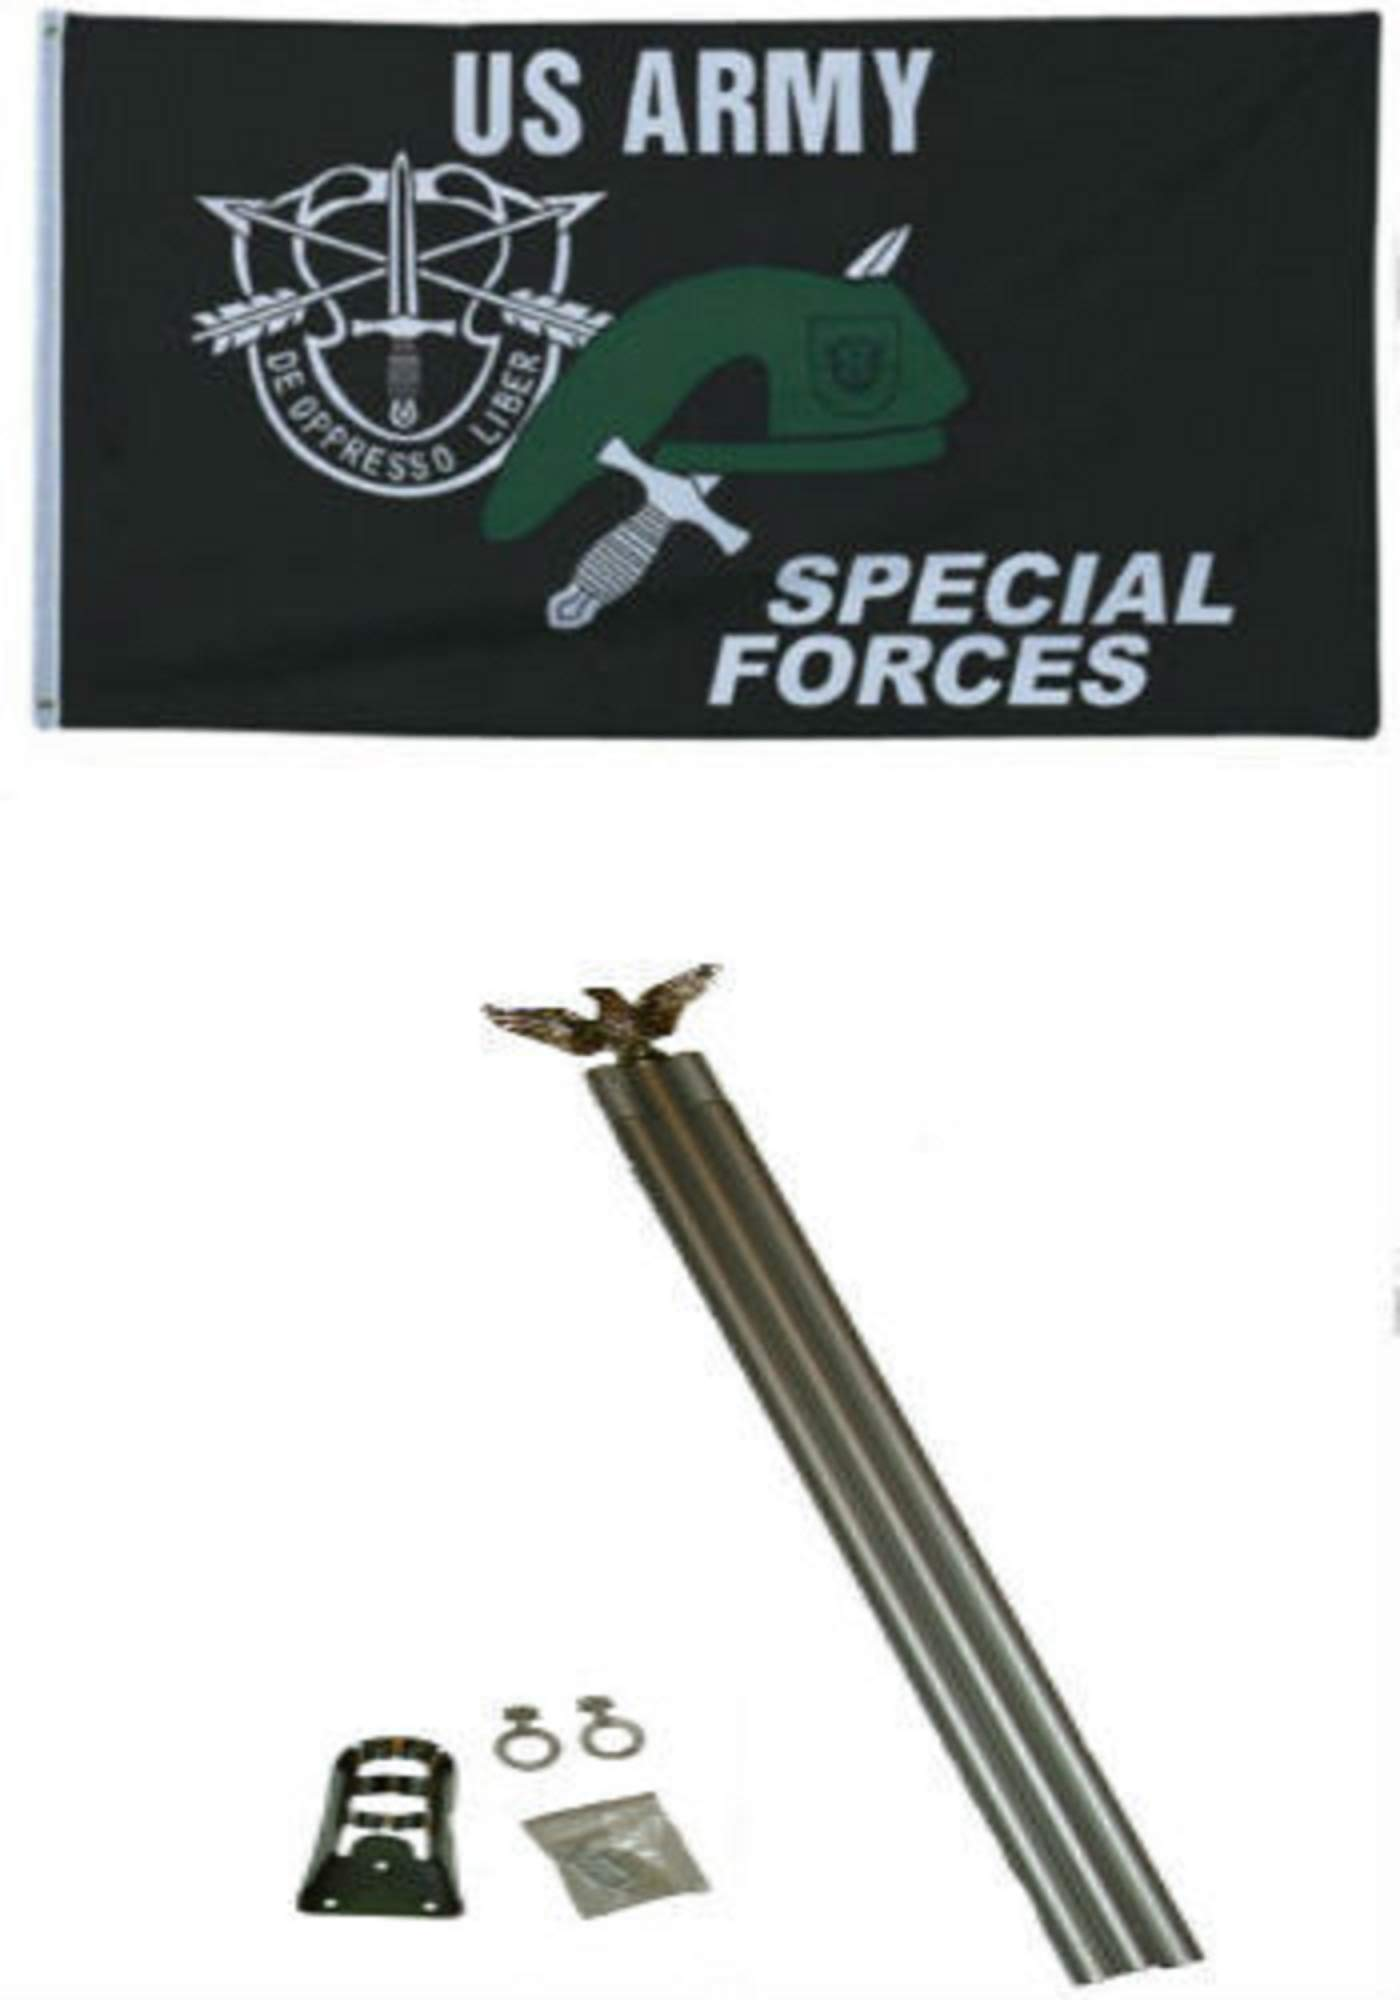 3x5 U.S. Army Special Forces Flag w 6 Ft Aluminum Flagpole Flag Pole kit BEST Garden Outdor Decor polyester material FLAG PREMIUM Vivid Color and UV Fade Resistant